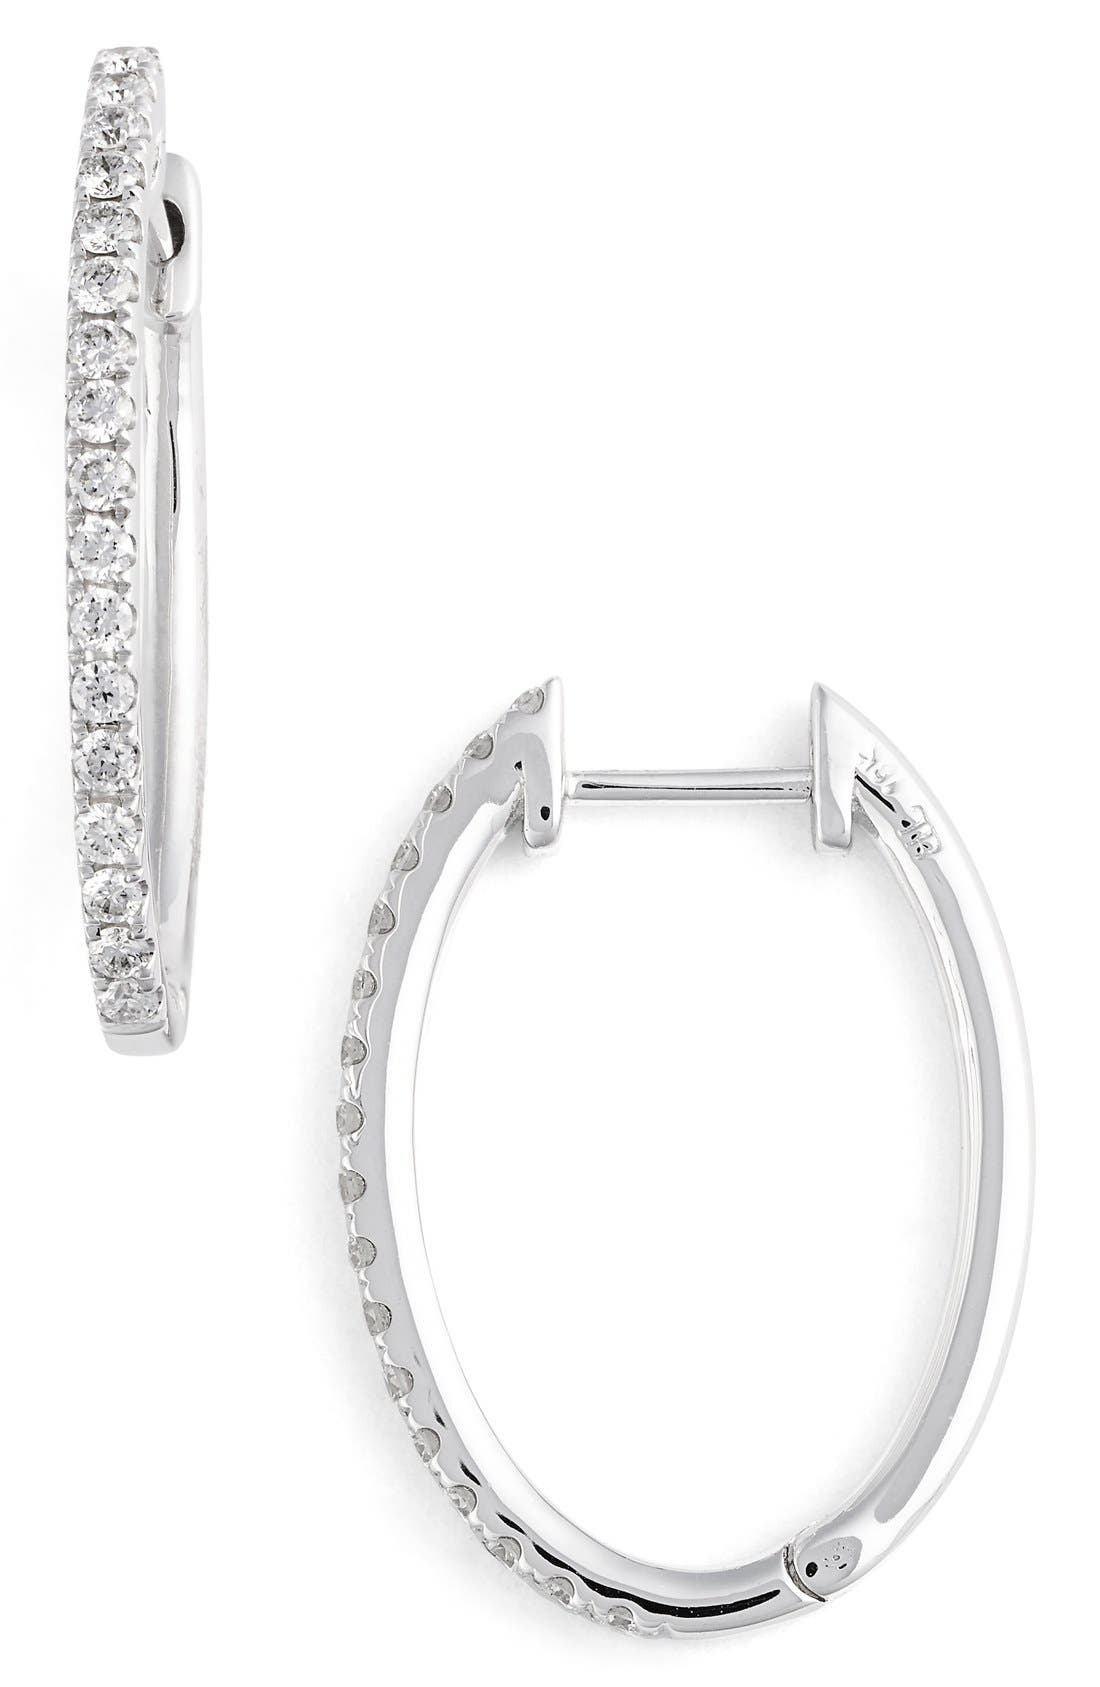 Oval Hoop Diamond Earrings,                             Main thumbnail 1, color,                             711